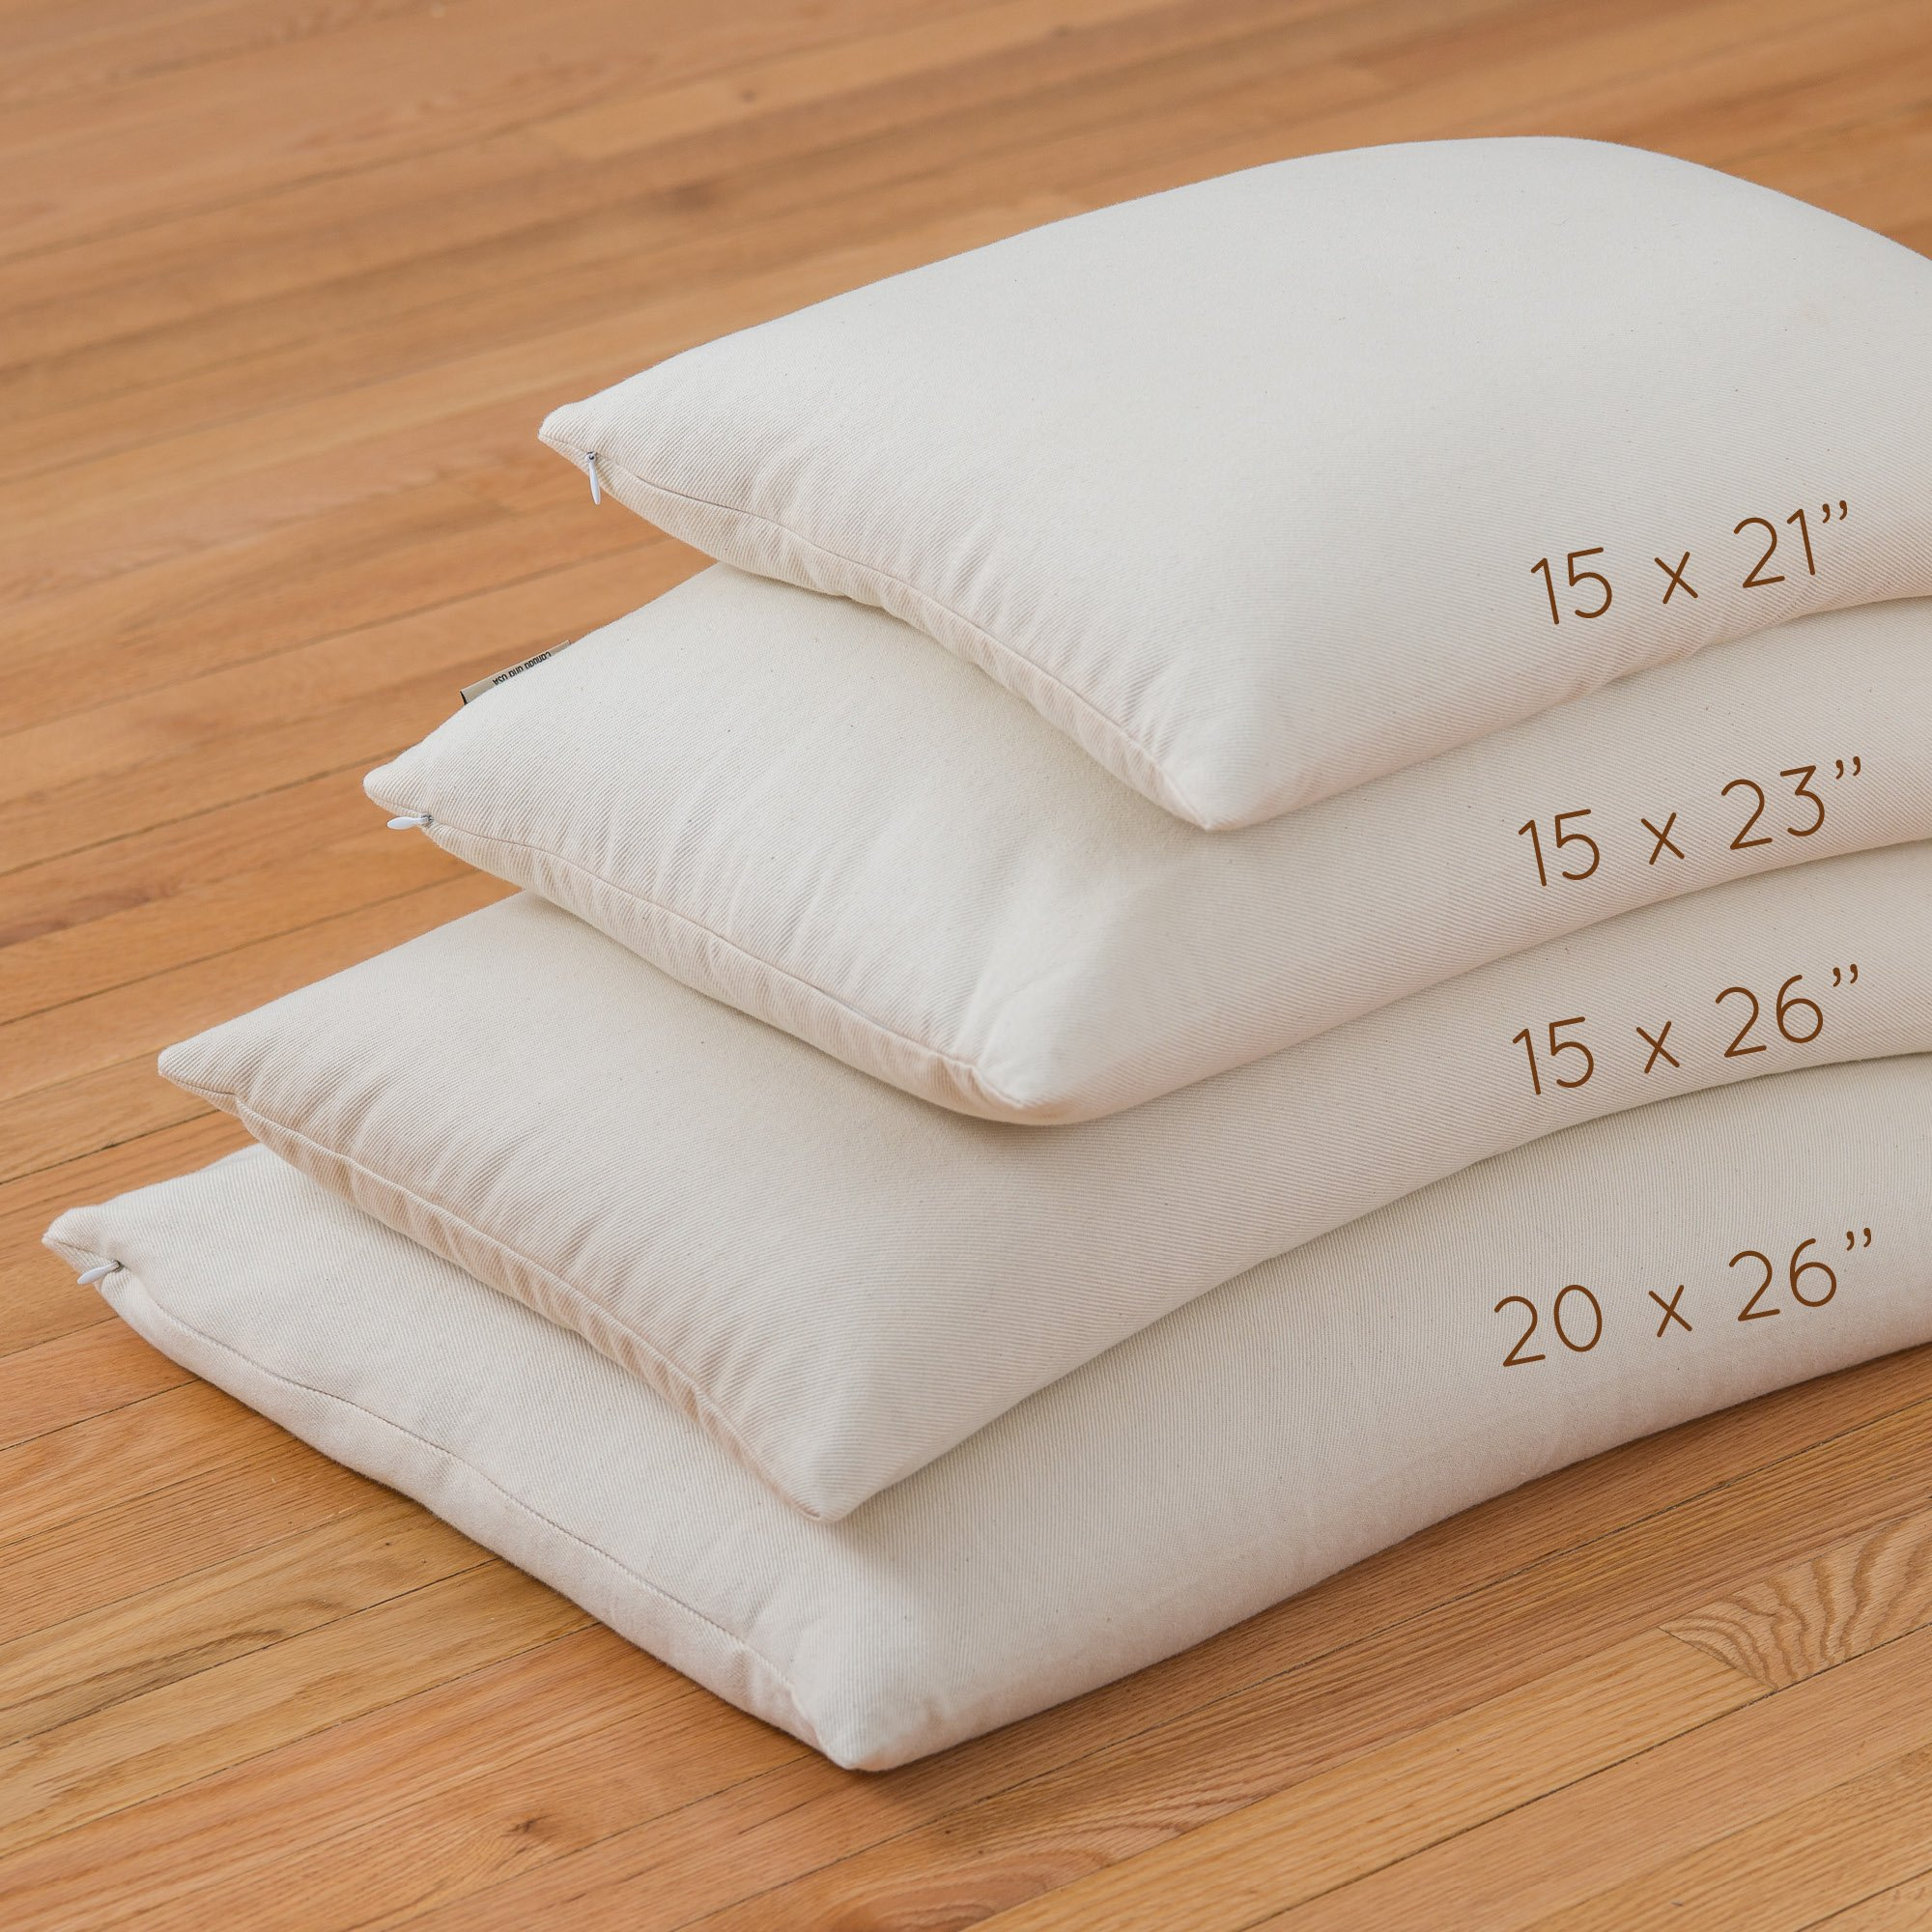 lazydaisycanada buckwheat pillow flax wrap heat product more page section com pillows